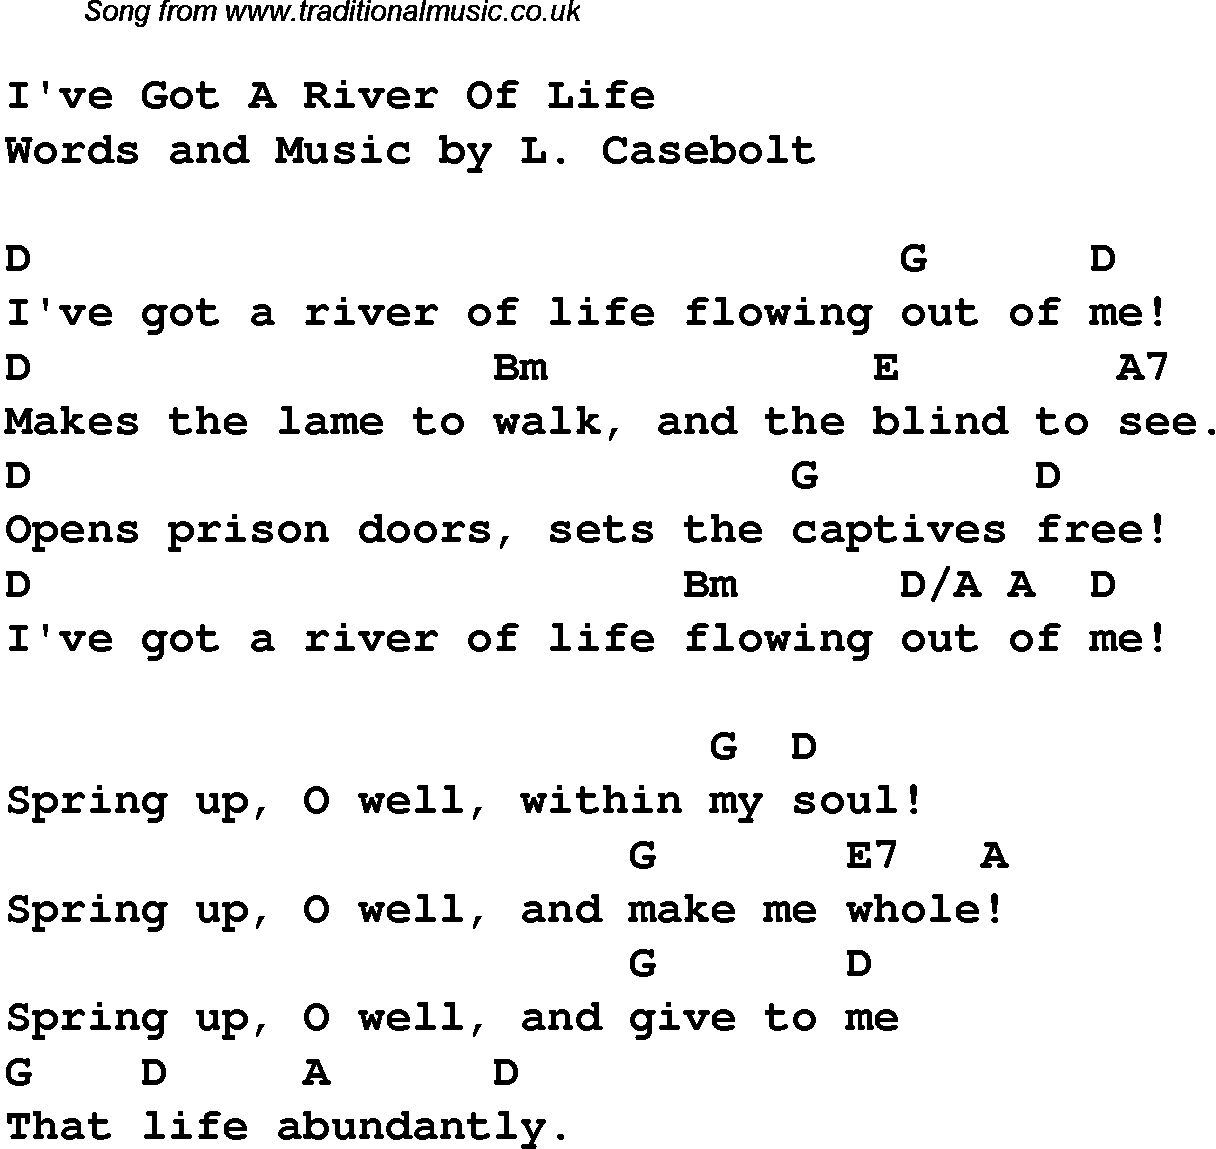 Worship Song Lyrics And Chords For Ive Got A River Of Life For